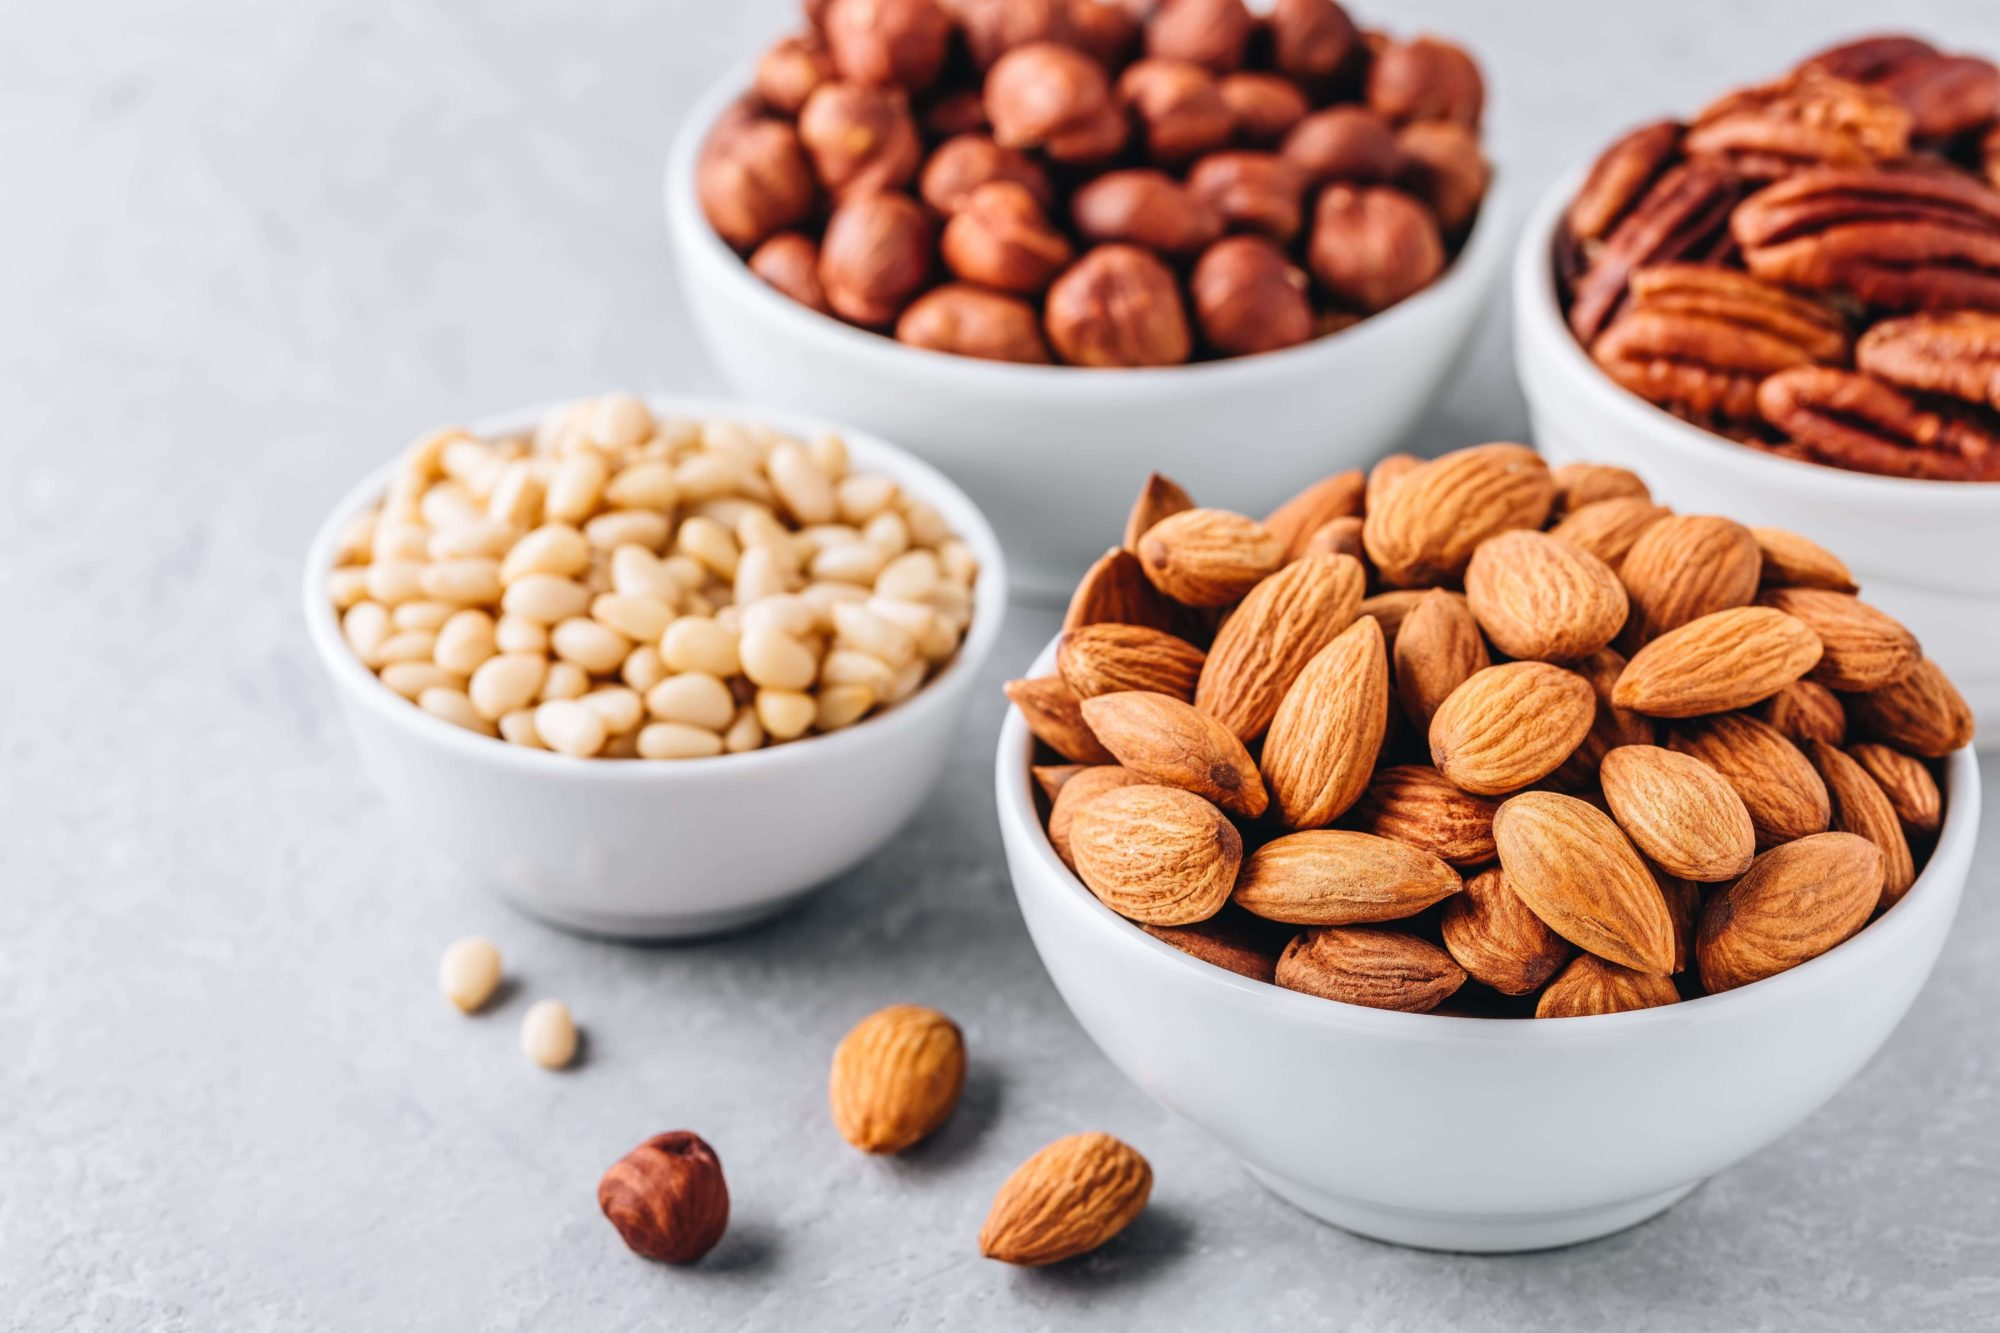 6 Benefits of Eating Nuts